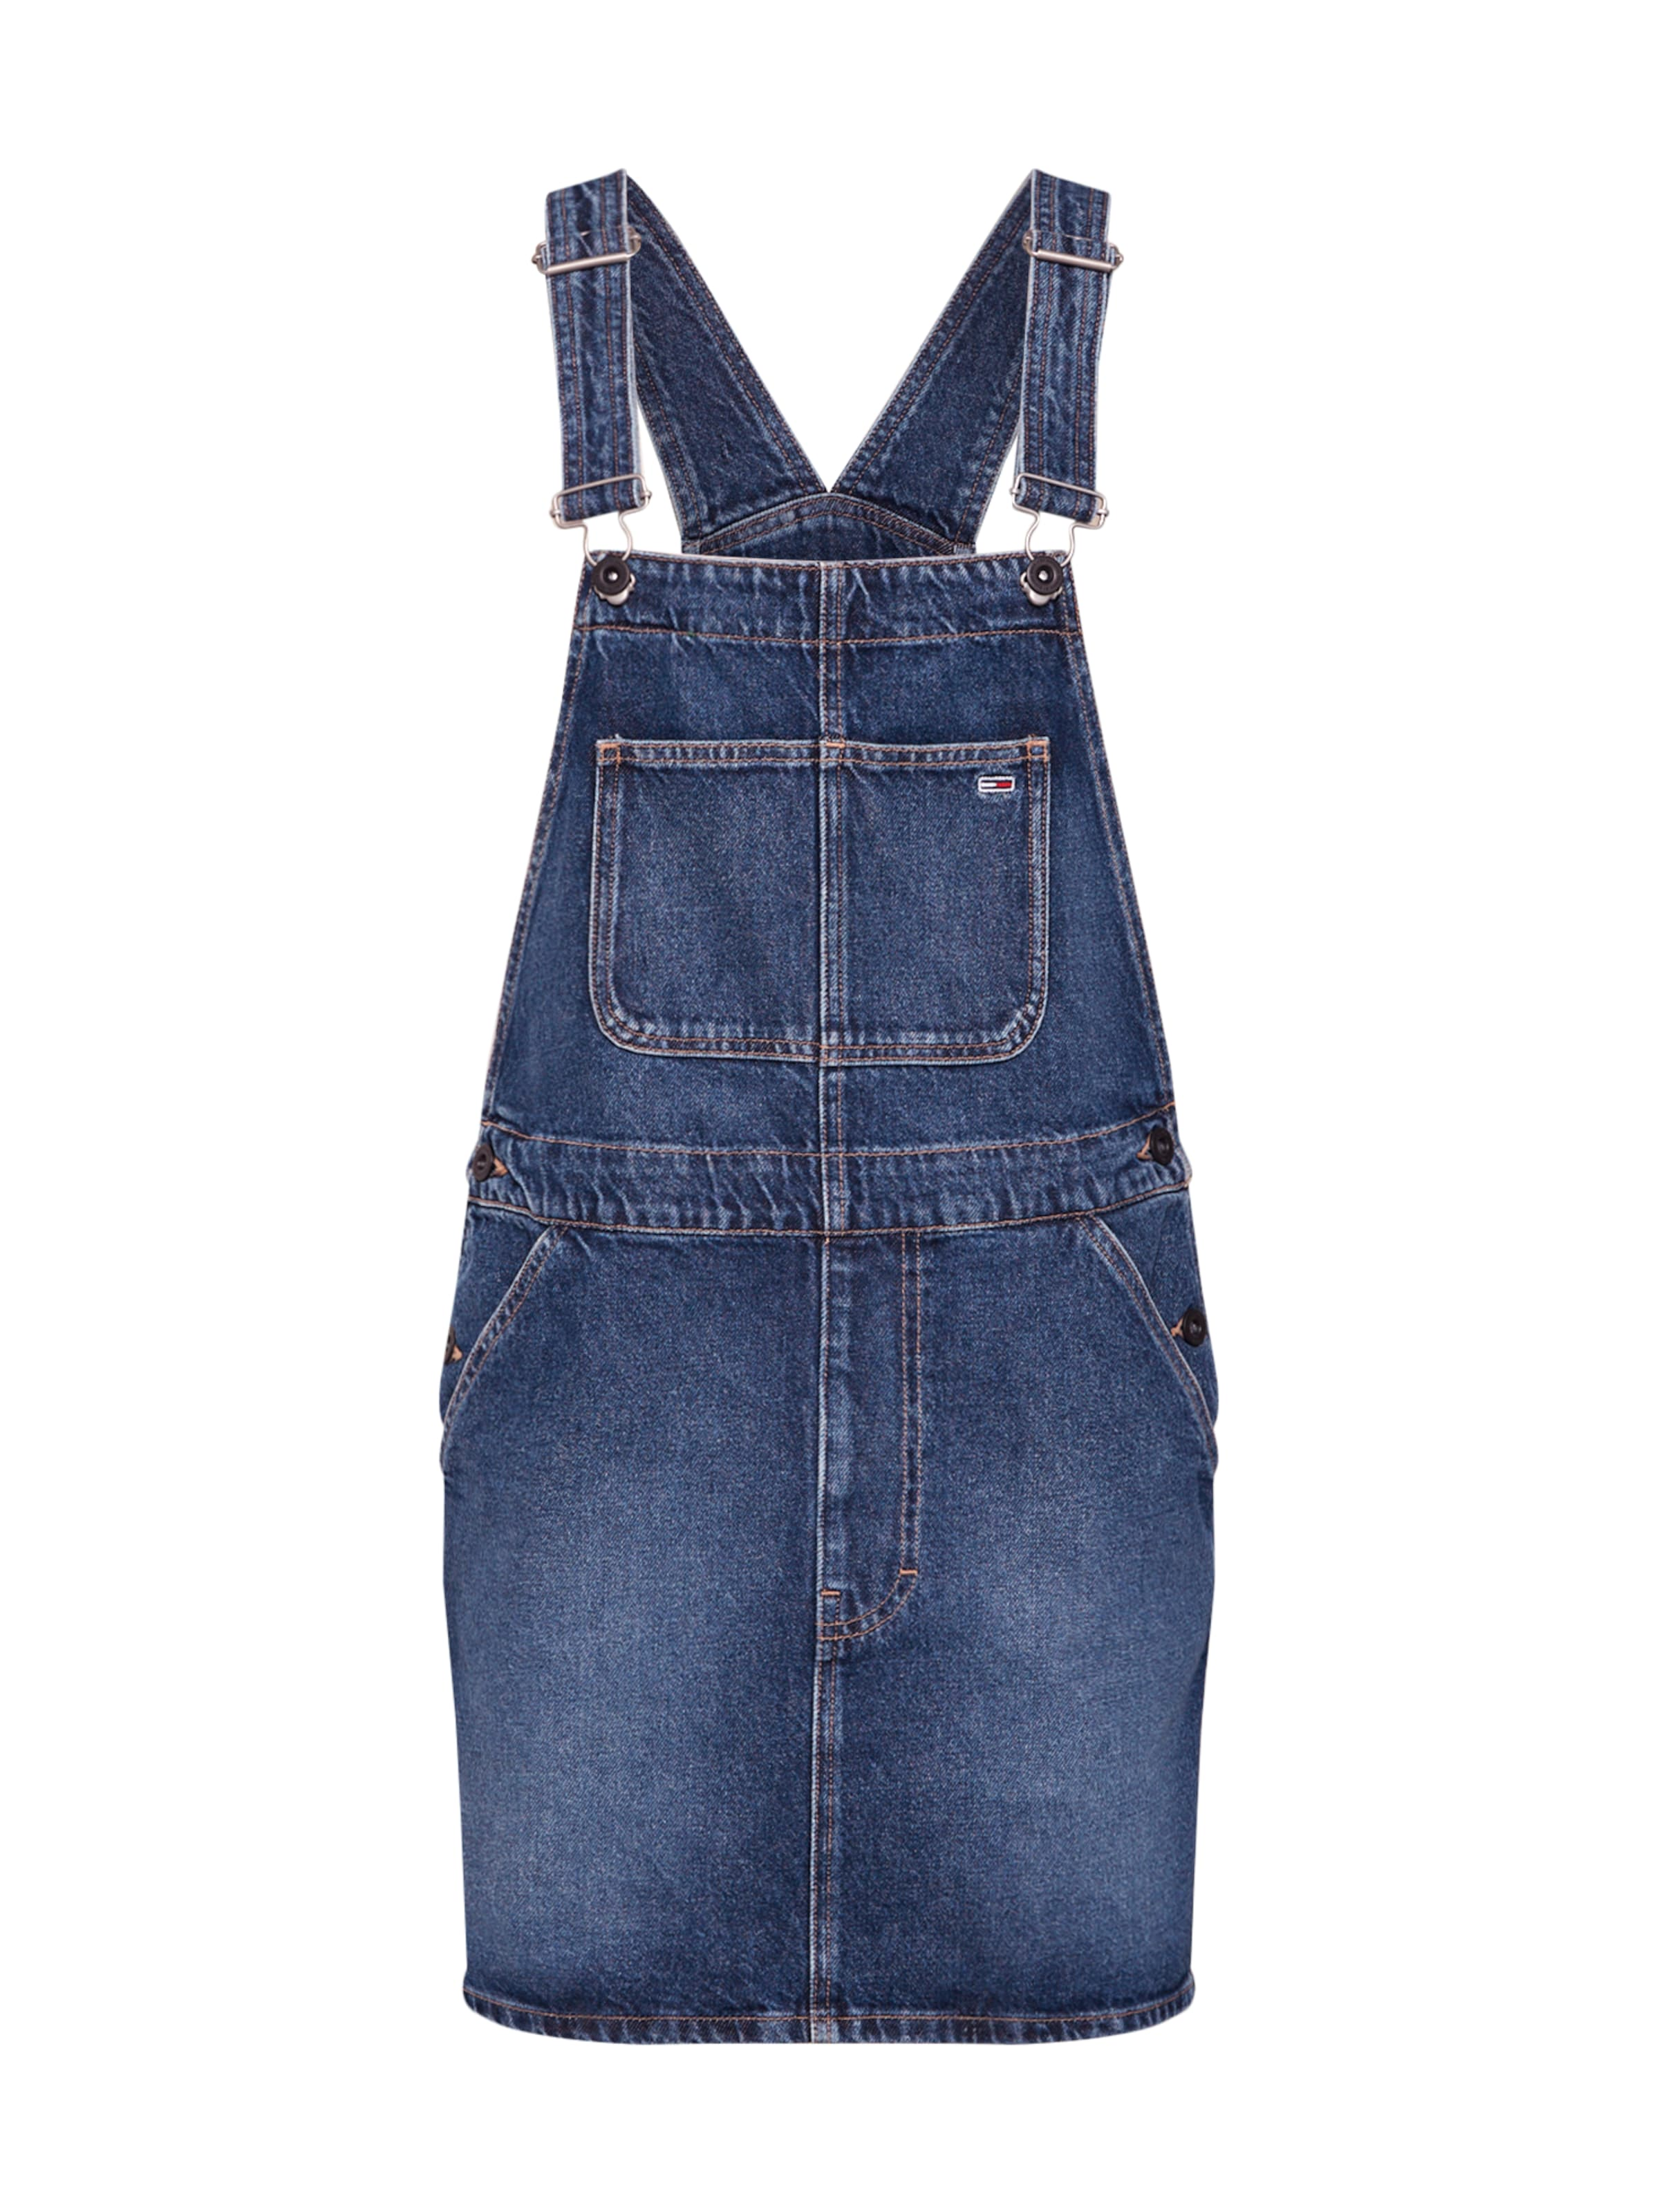 Jeans 'dungaree' Rock In Denim Tommy Blue 8kwnOXN0P